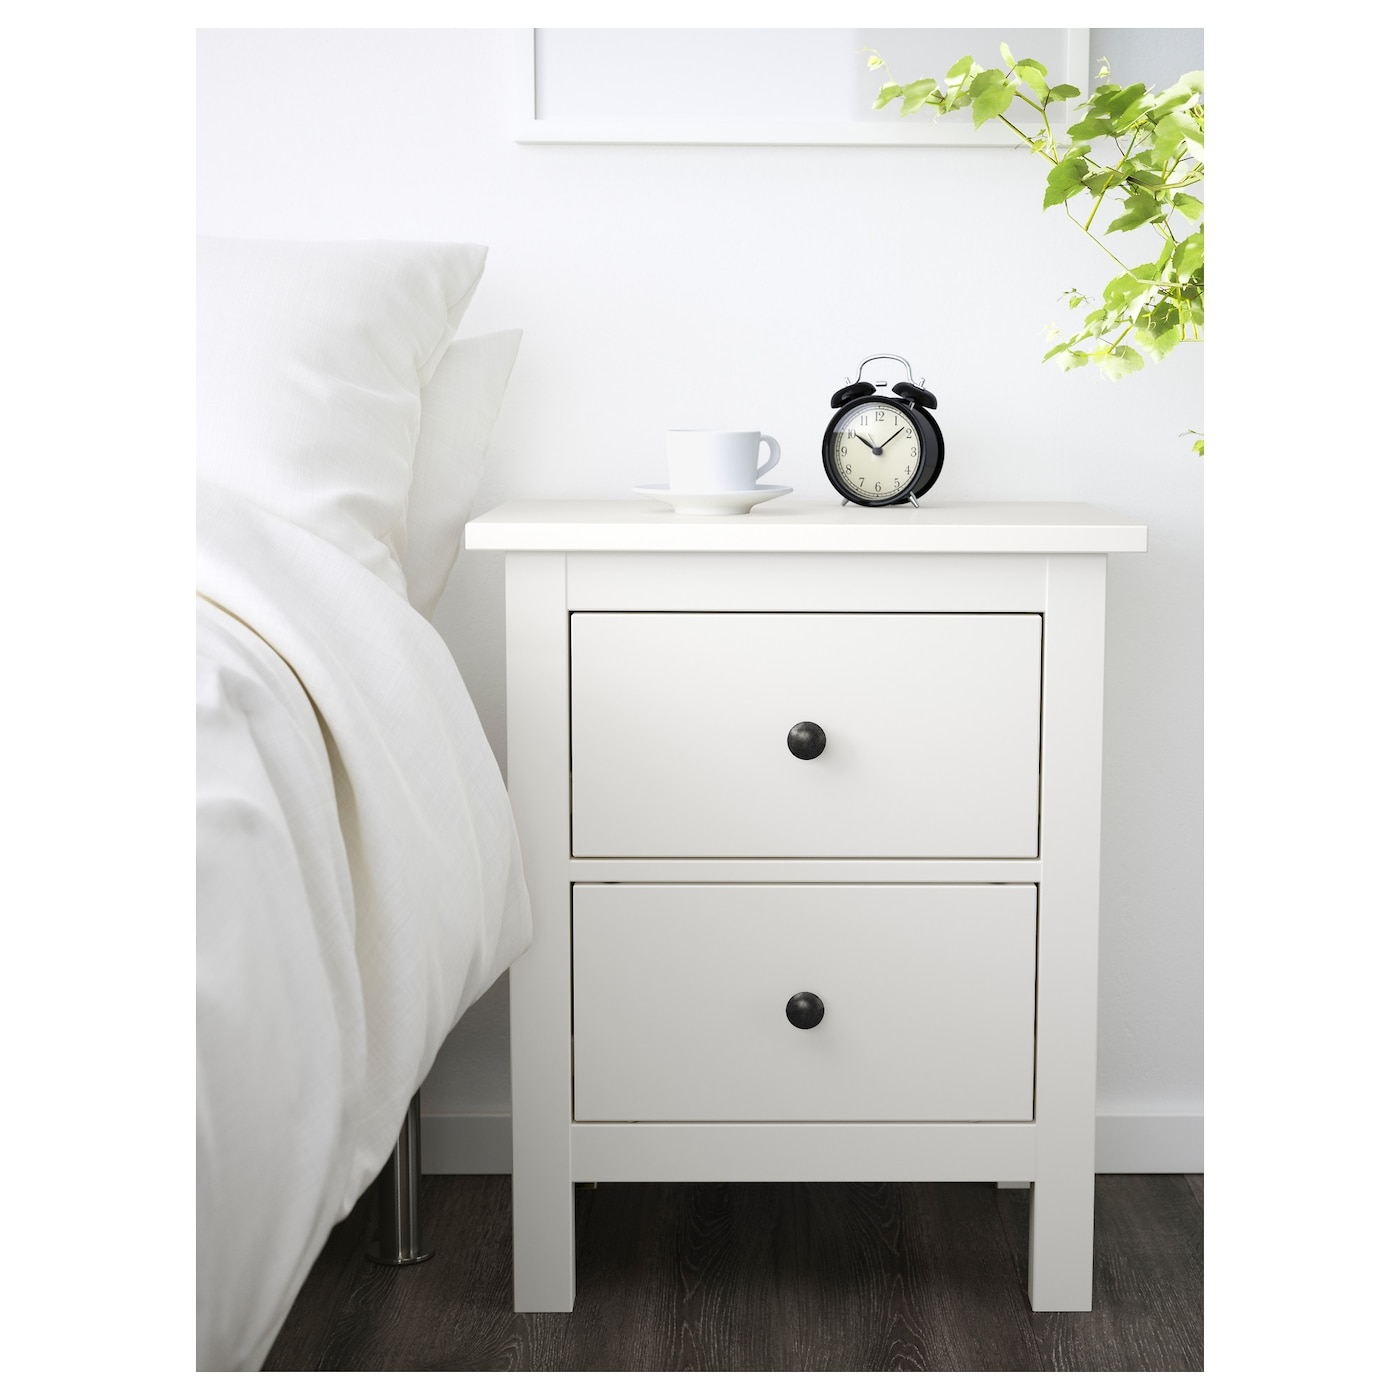 Ikea Hemnes Chest Of 2 Drawers The Drawer Insert Is Perfect For Small Things